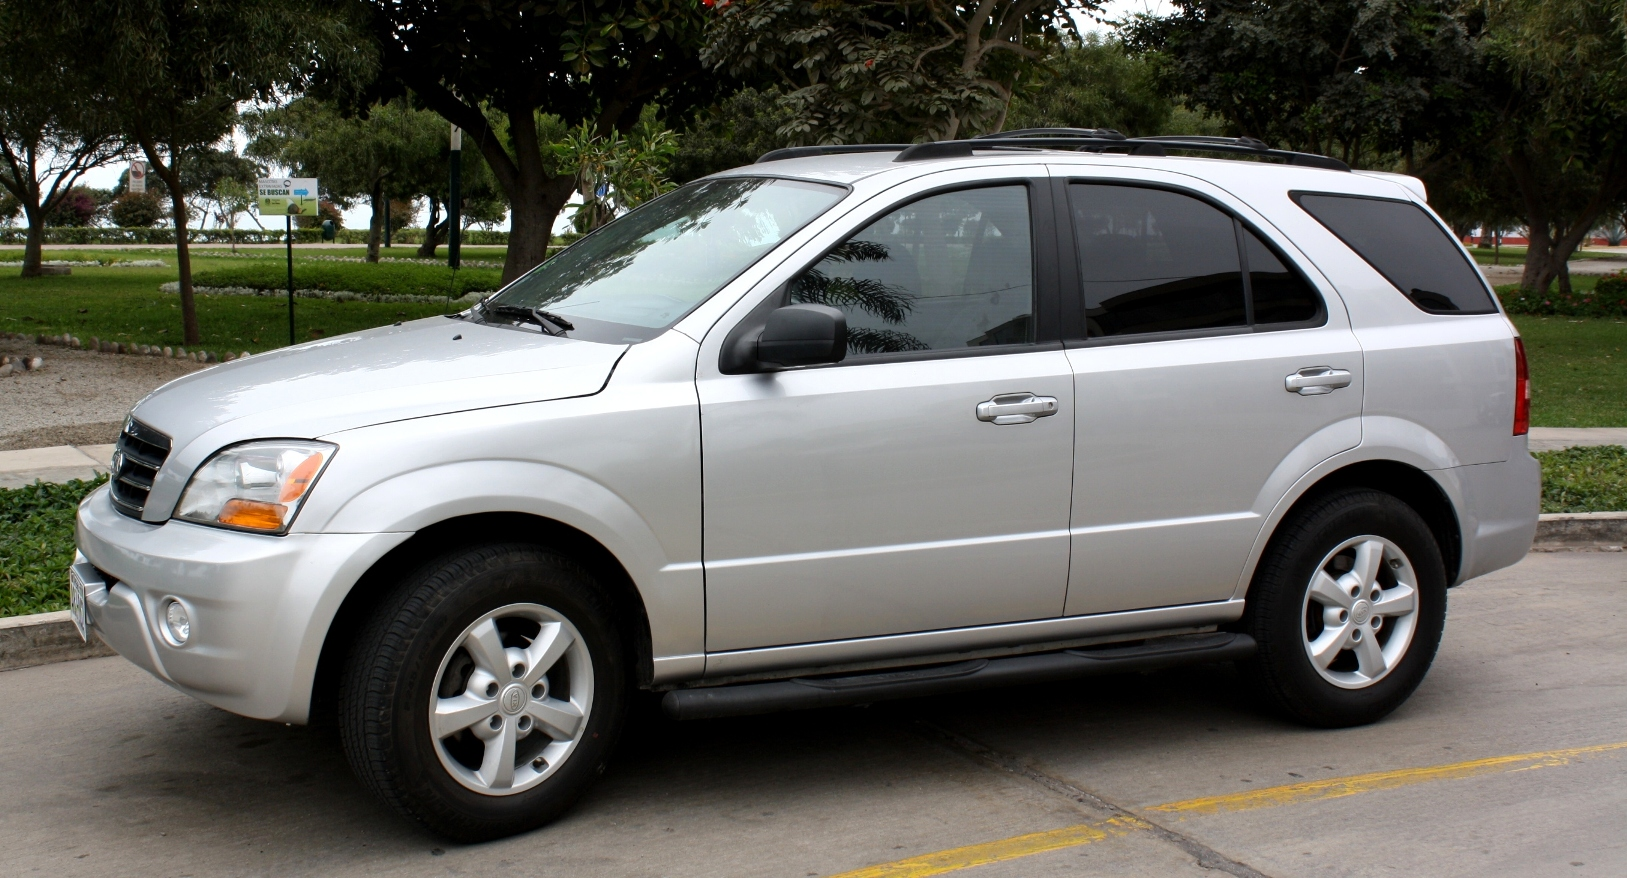 2007 Kia Sorento Information And Photos Momentcar